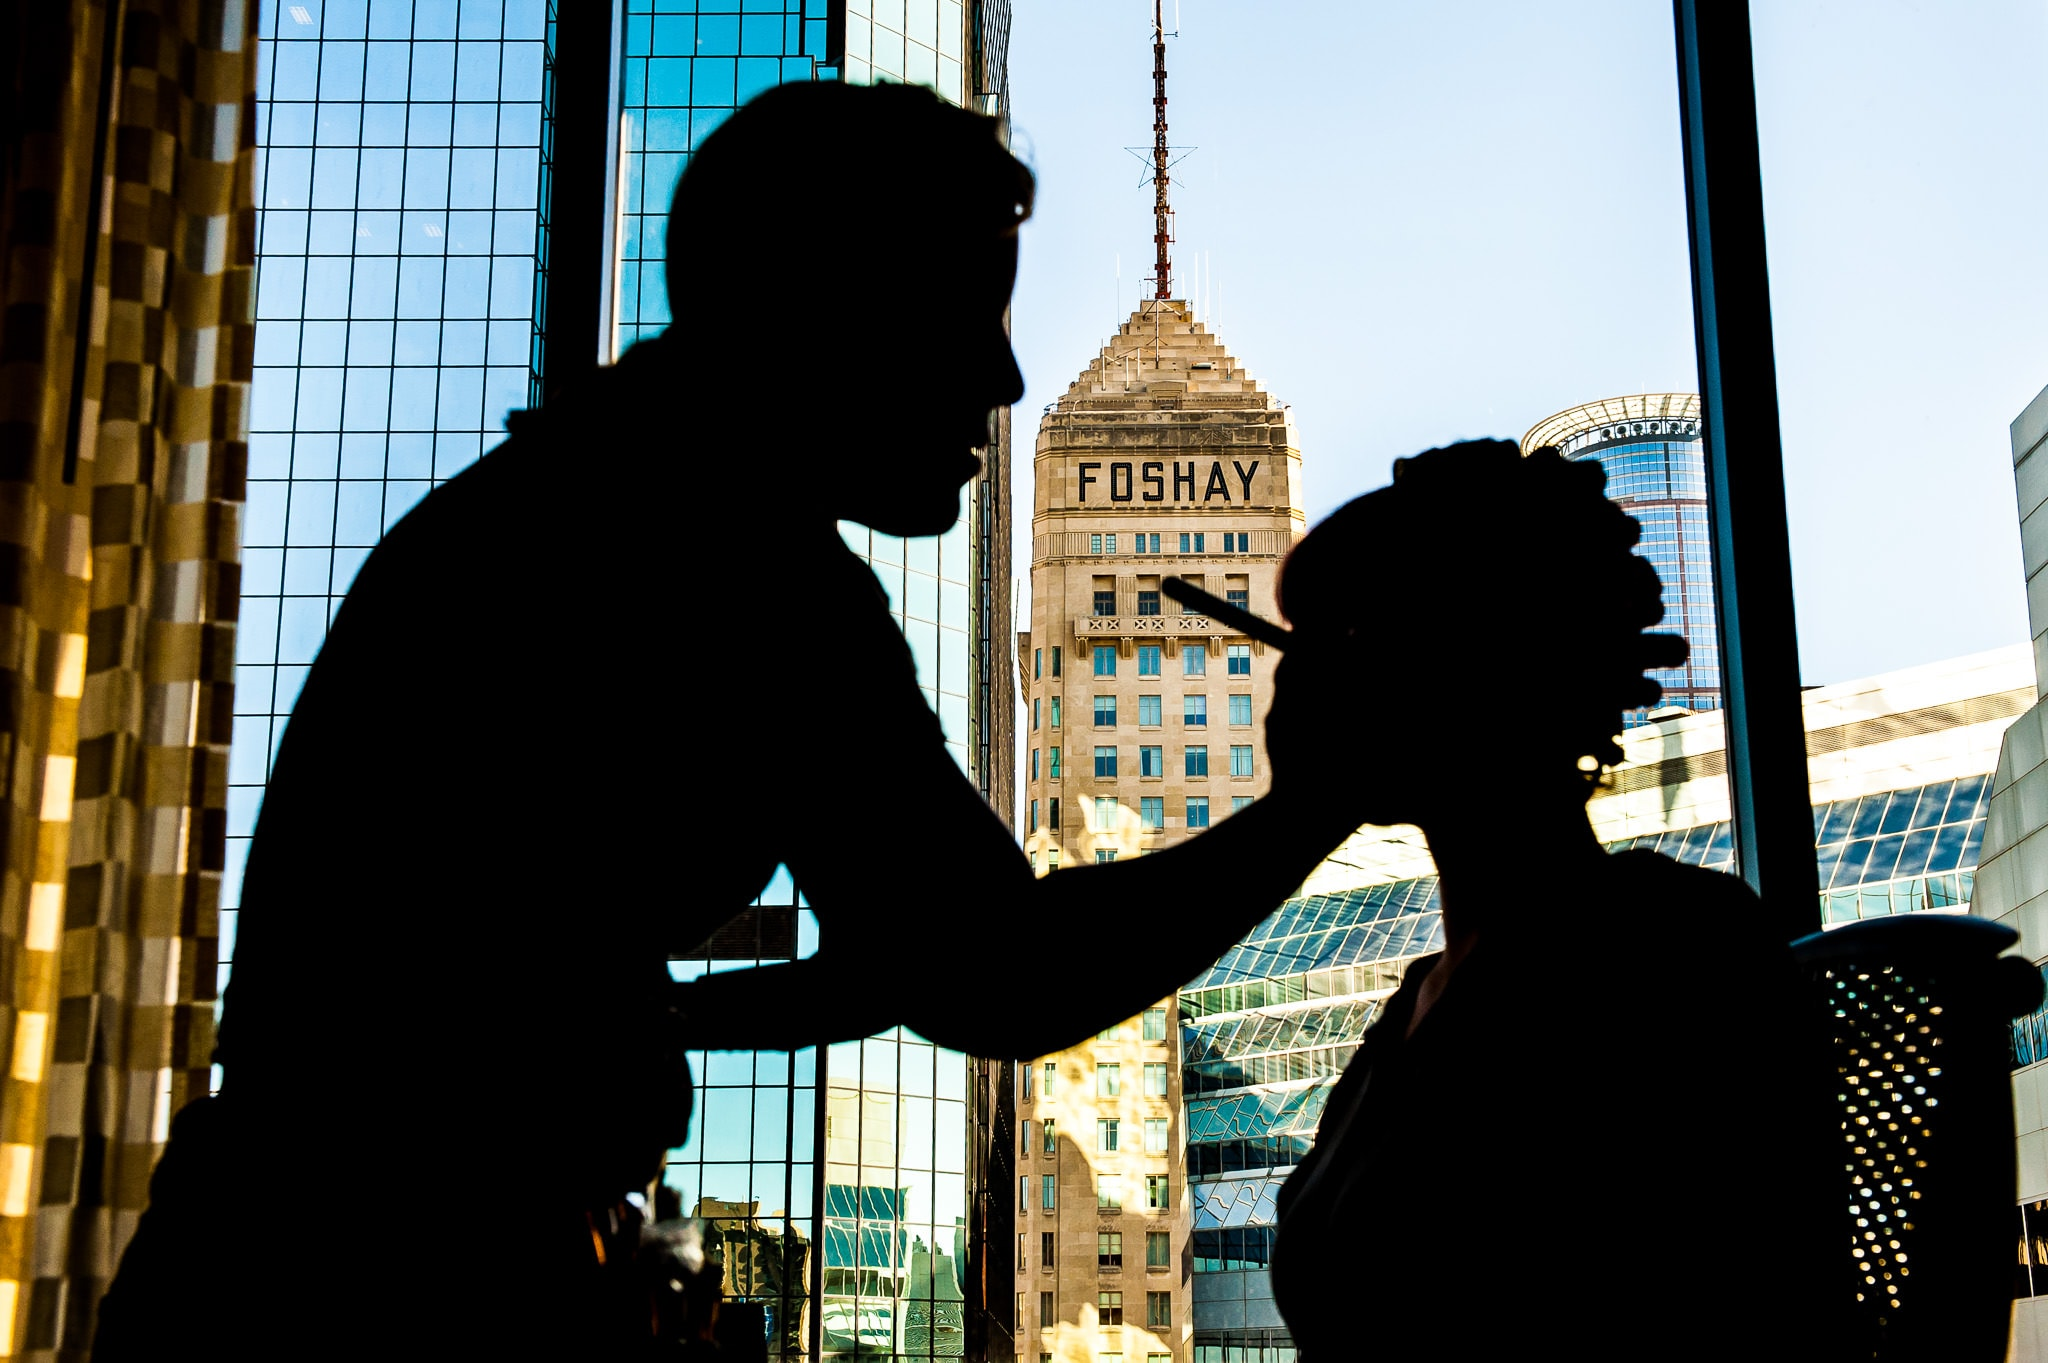 Silhouette of a bride getting her wedding makeup done with the Foshay Tower building and Downton Minneapolis in the background